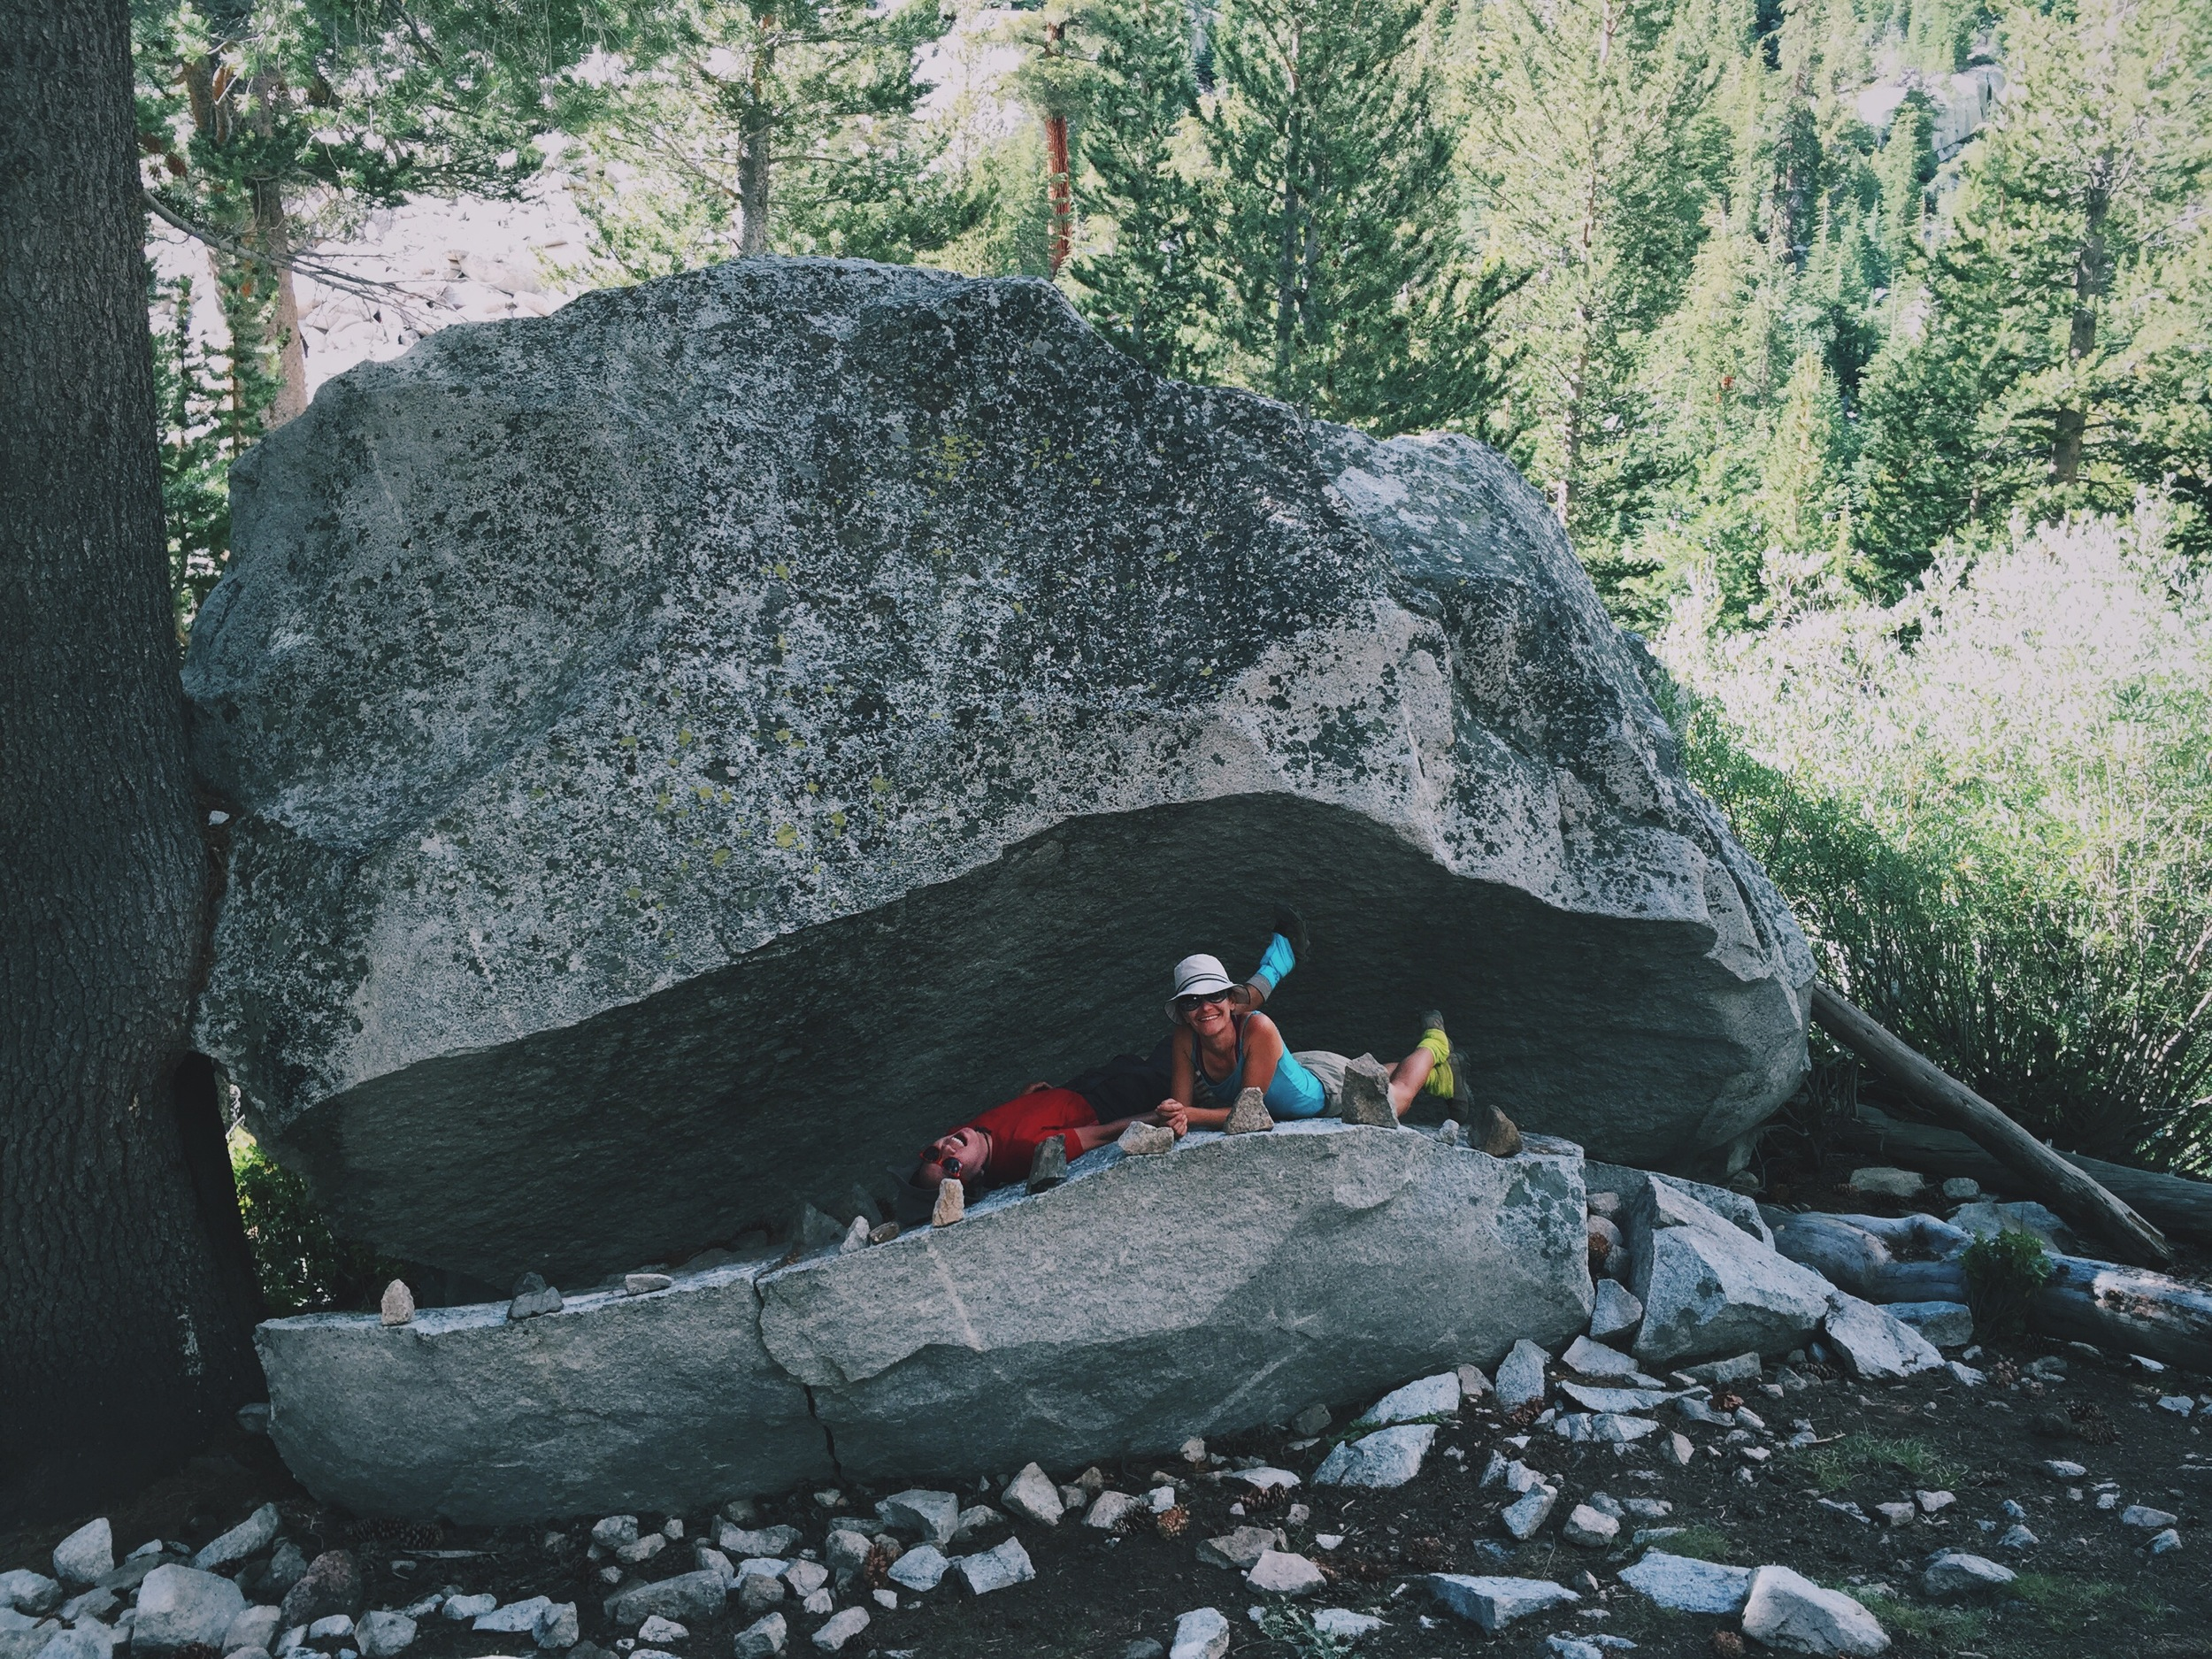 Monster rock wasn't hungry enough to eat us for lunch.